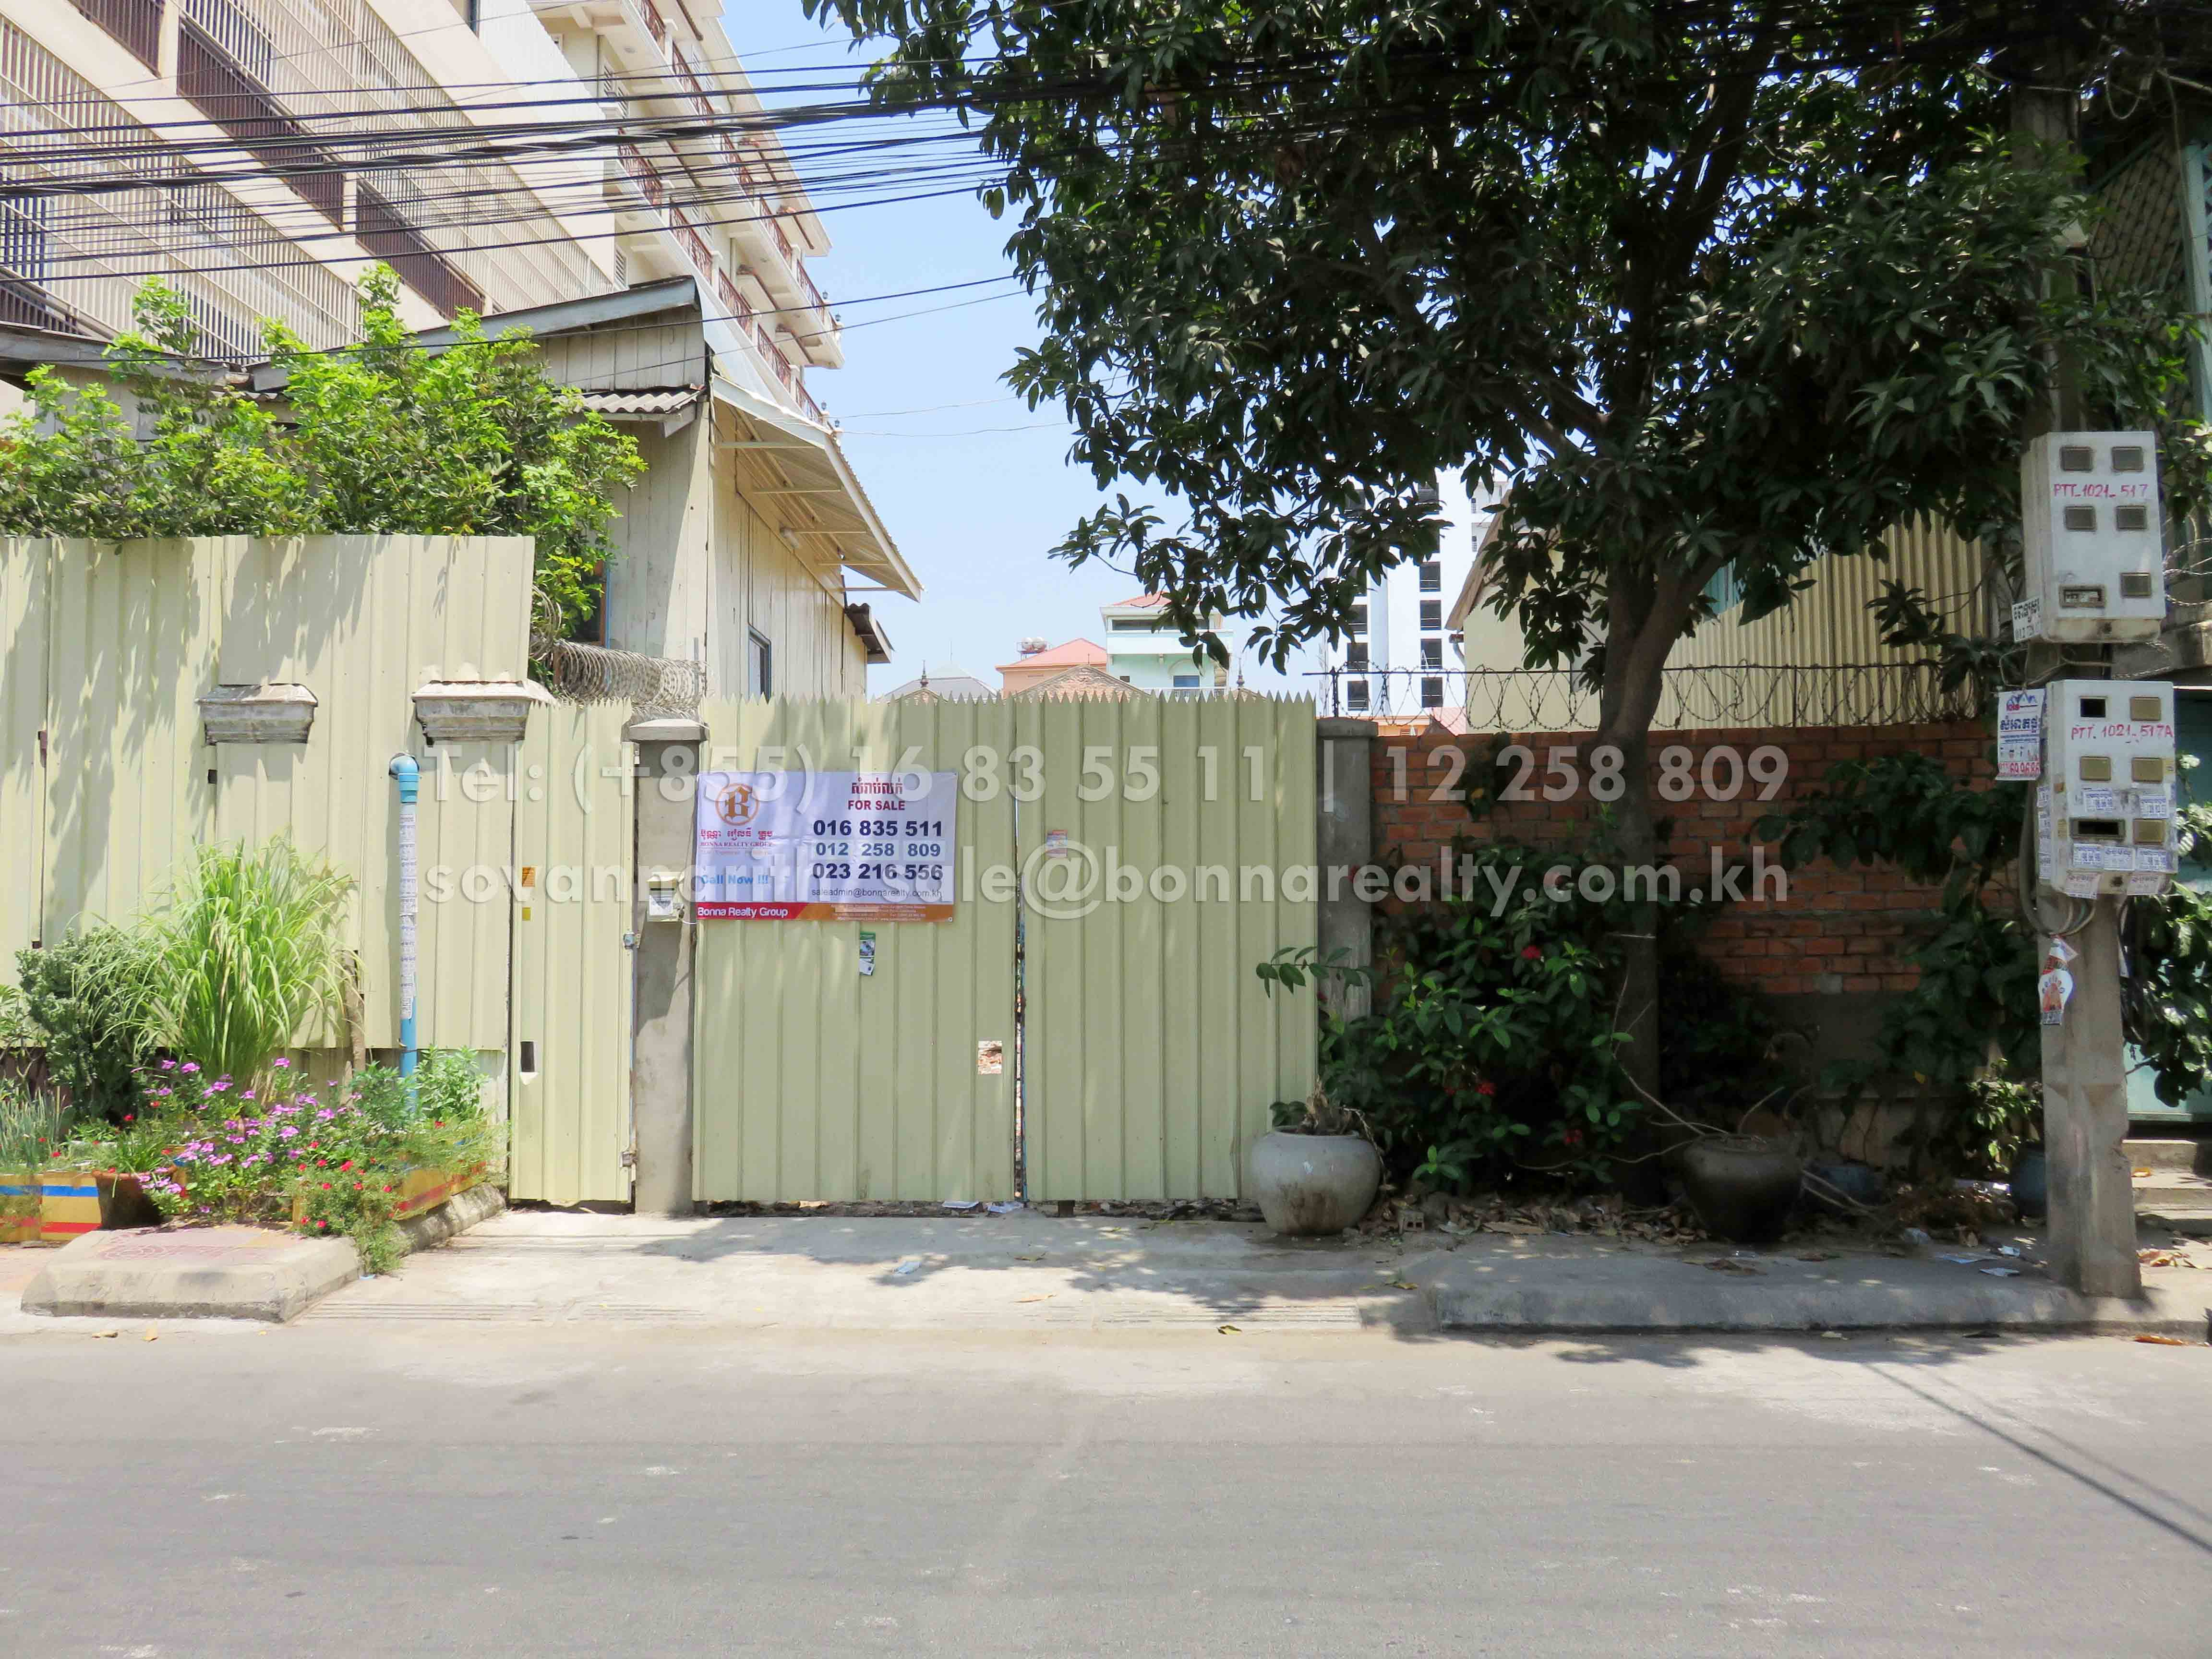 Land for sale near Tuol Tom Poung Market